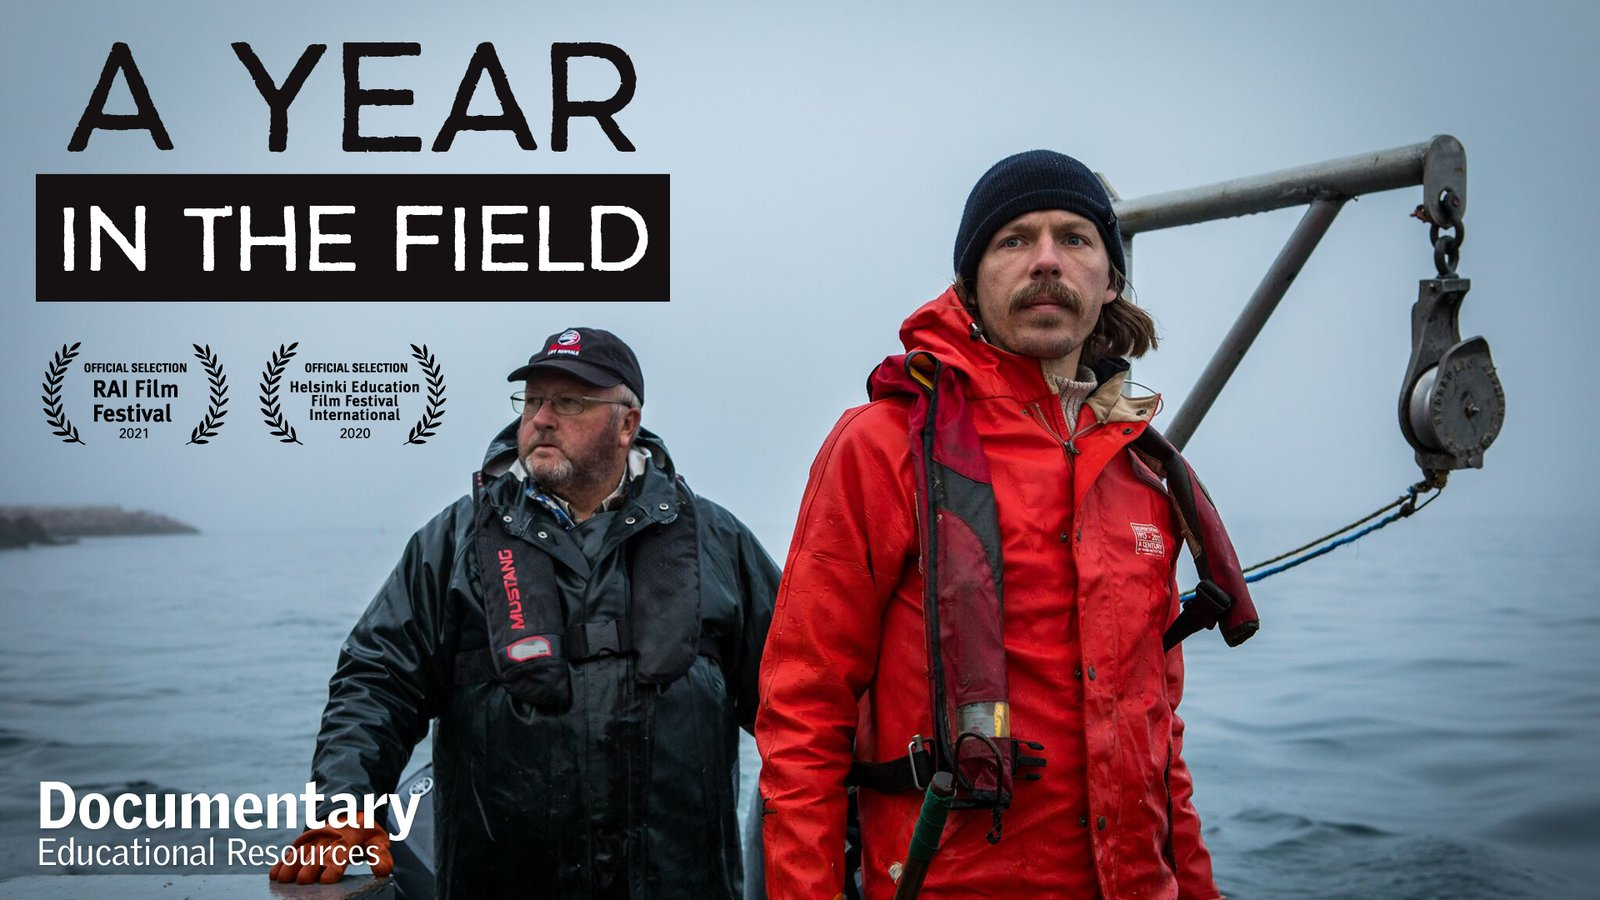 A Year in the Field